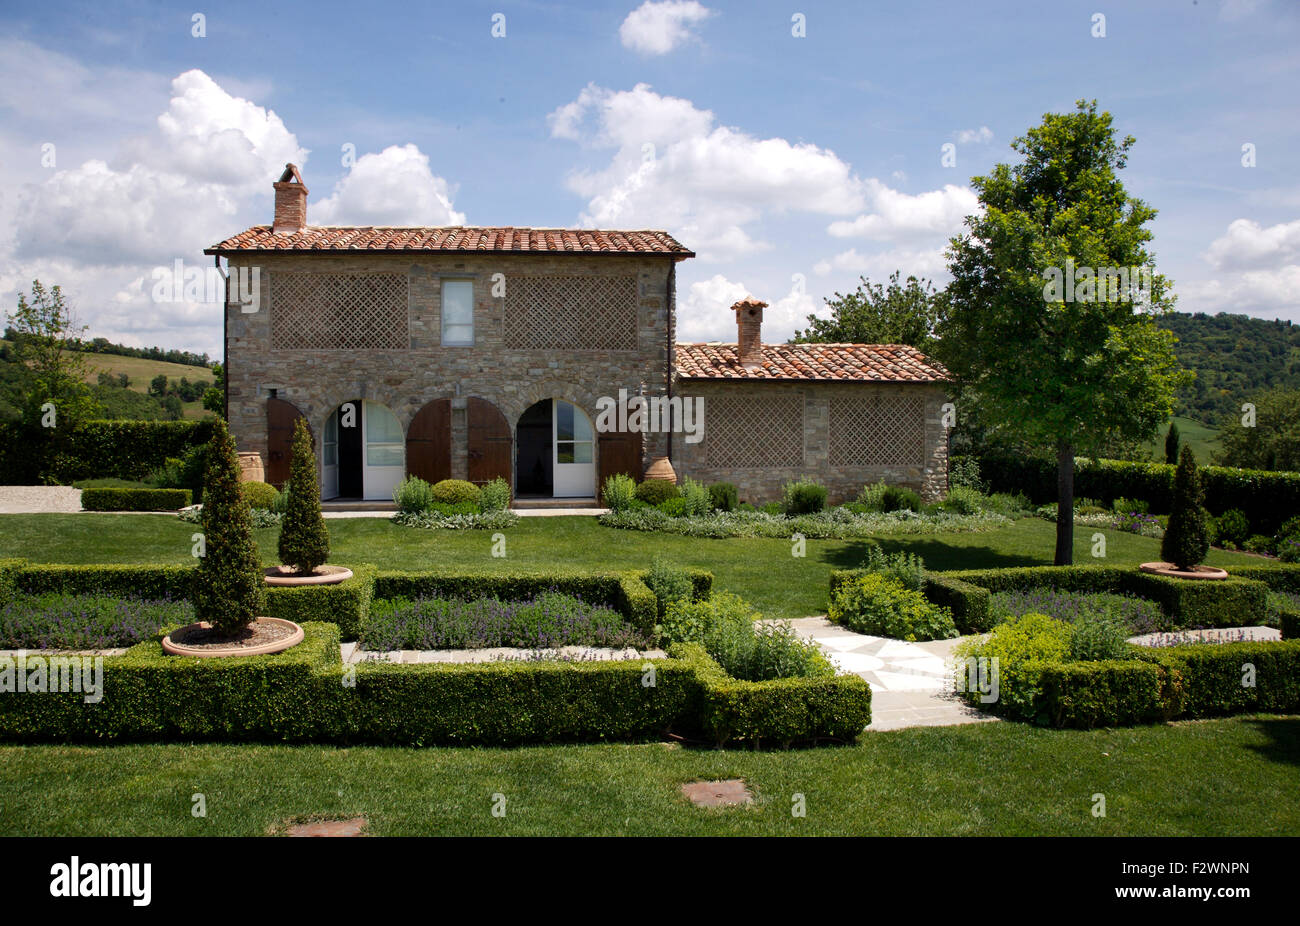 Low Clipped Hedging In Formal Parterre Garden Front Of Italian Country Villa